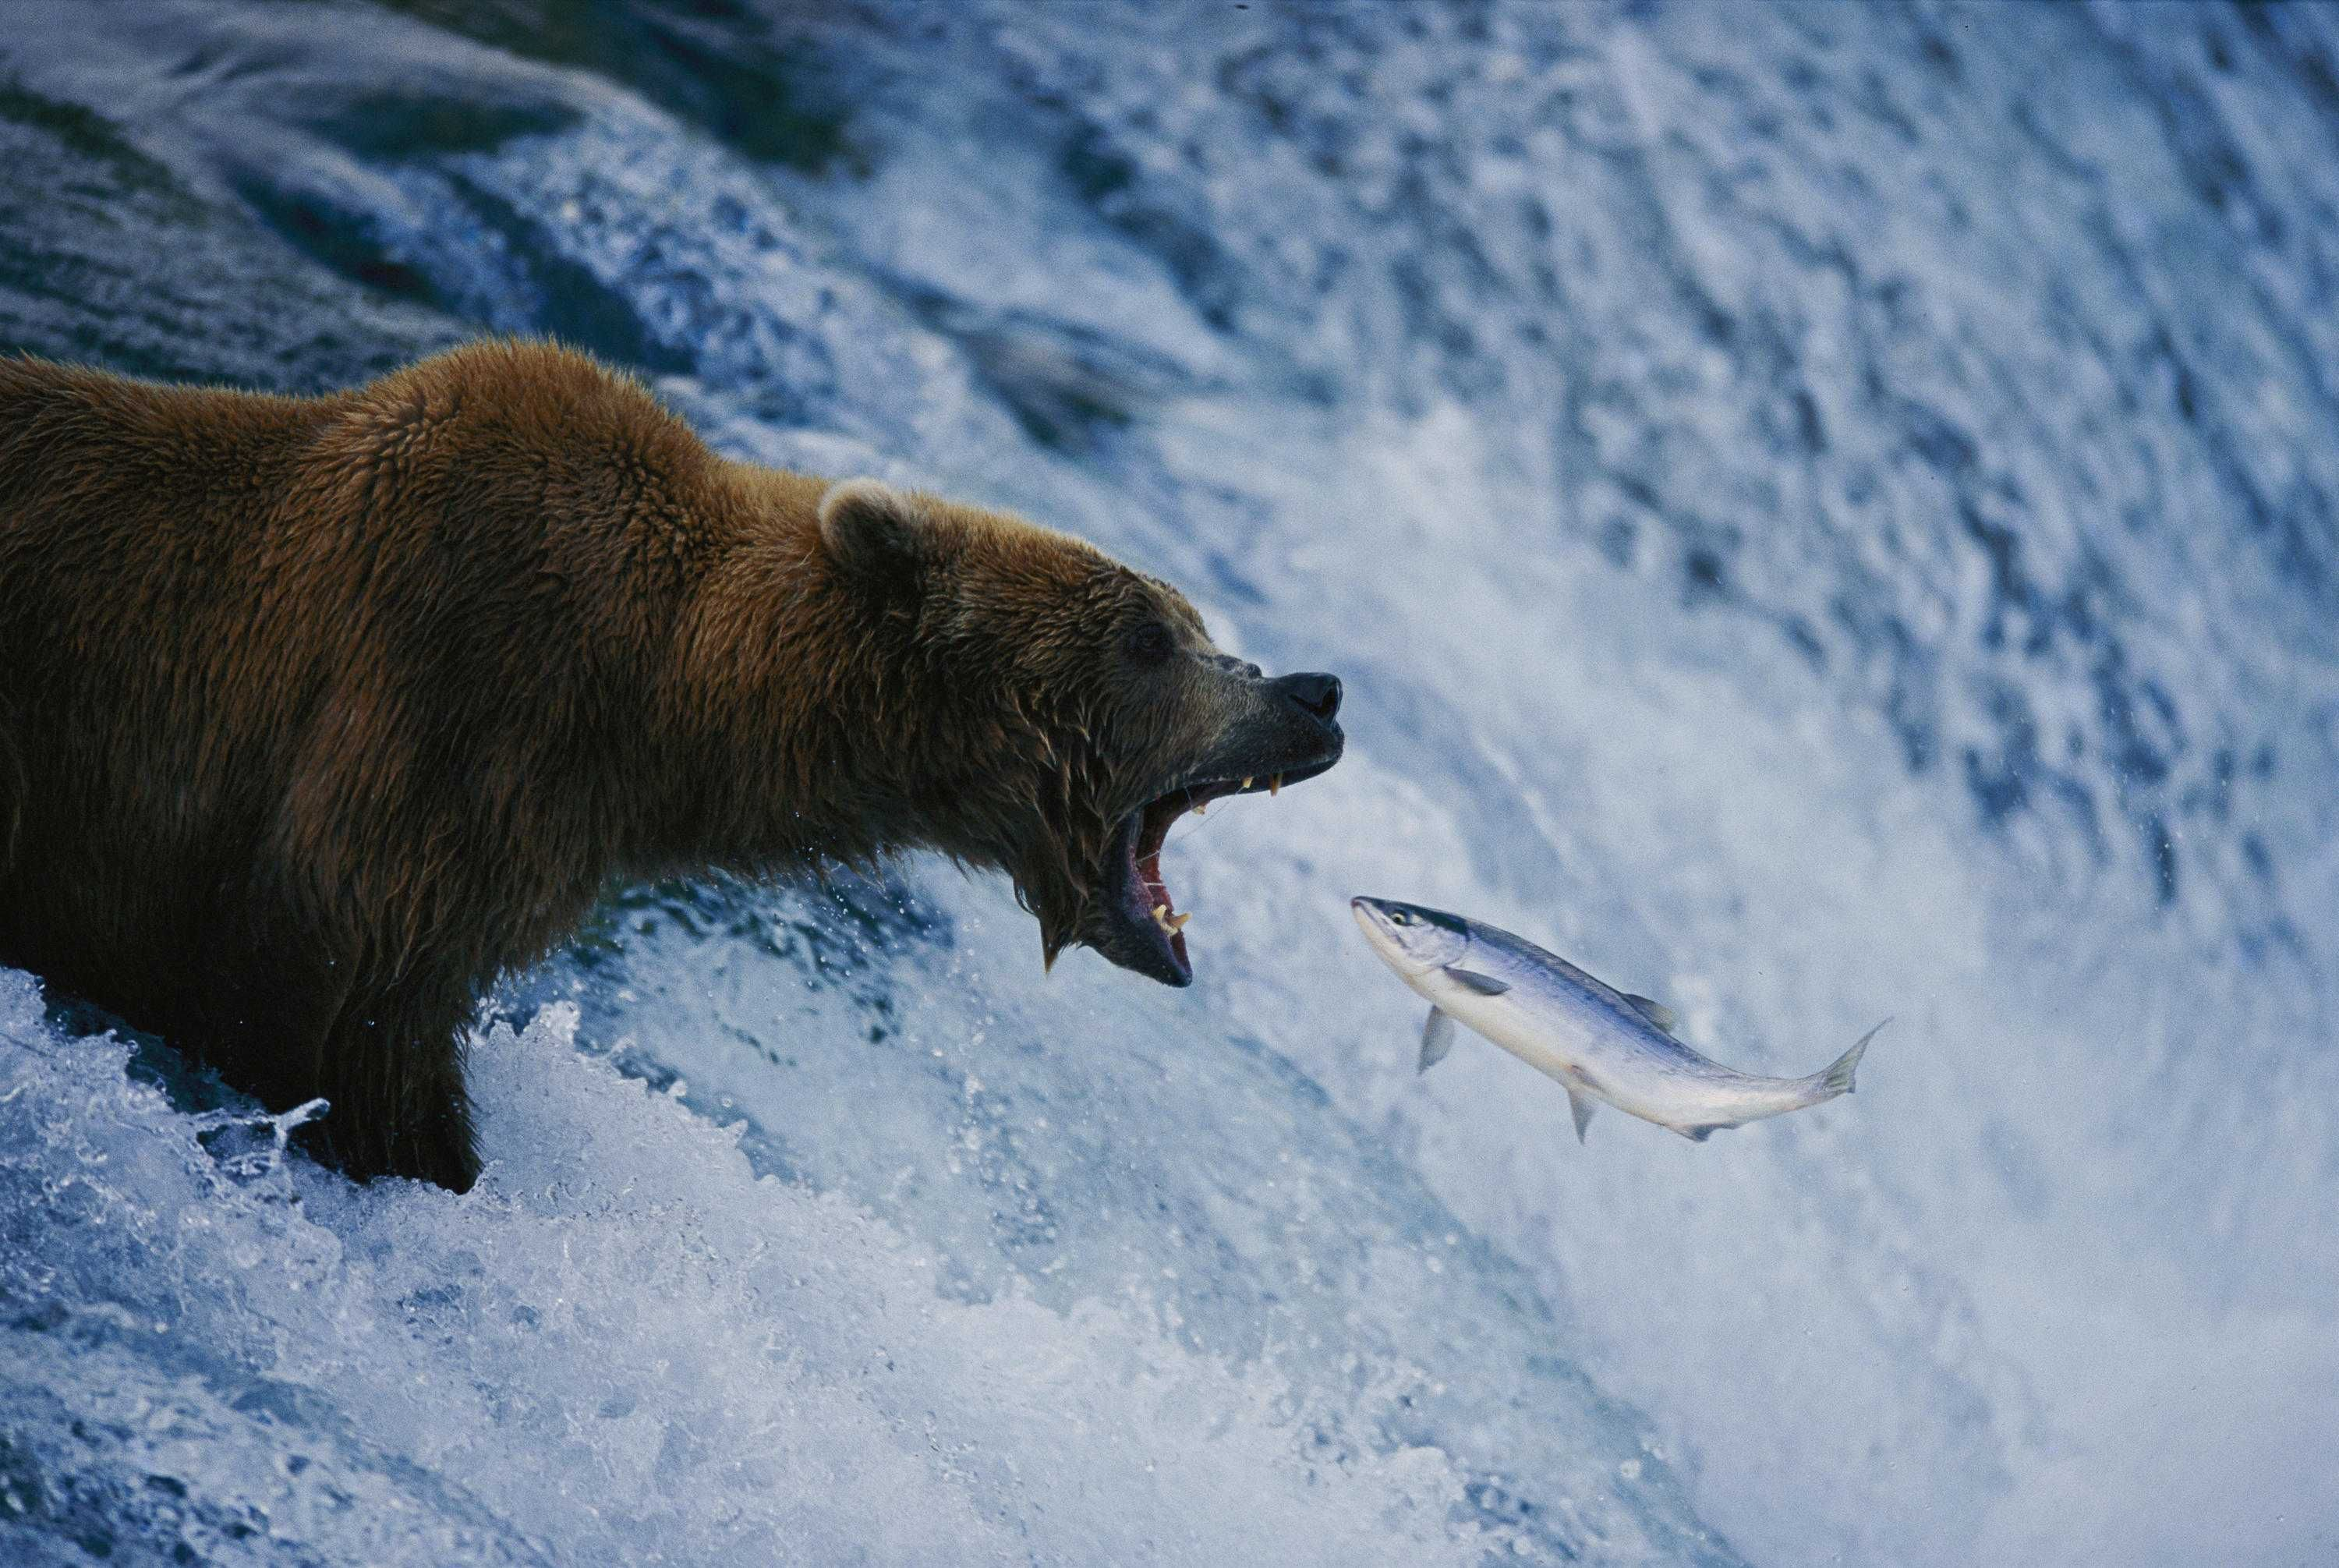 Salmon fishing, Brooks Falls, Katmai National Park, Alaska, 1999  Christie's Boundless: 125 Years of National Geographic Photography www.christies.com/natgeo Estimates starting at $400